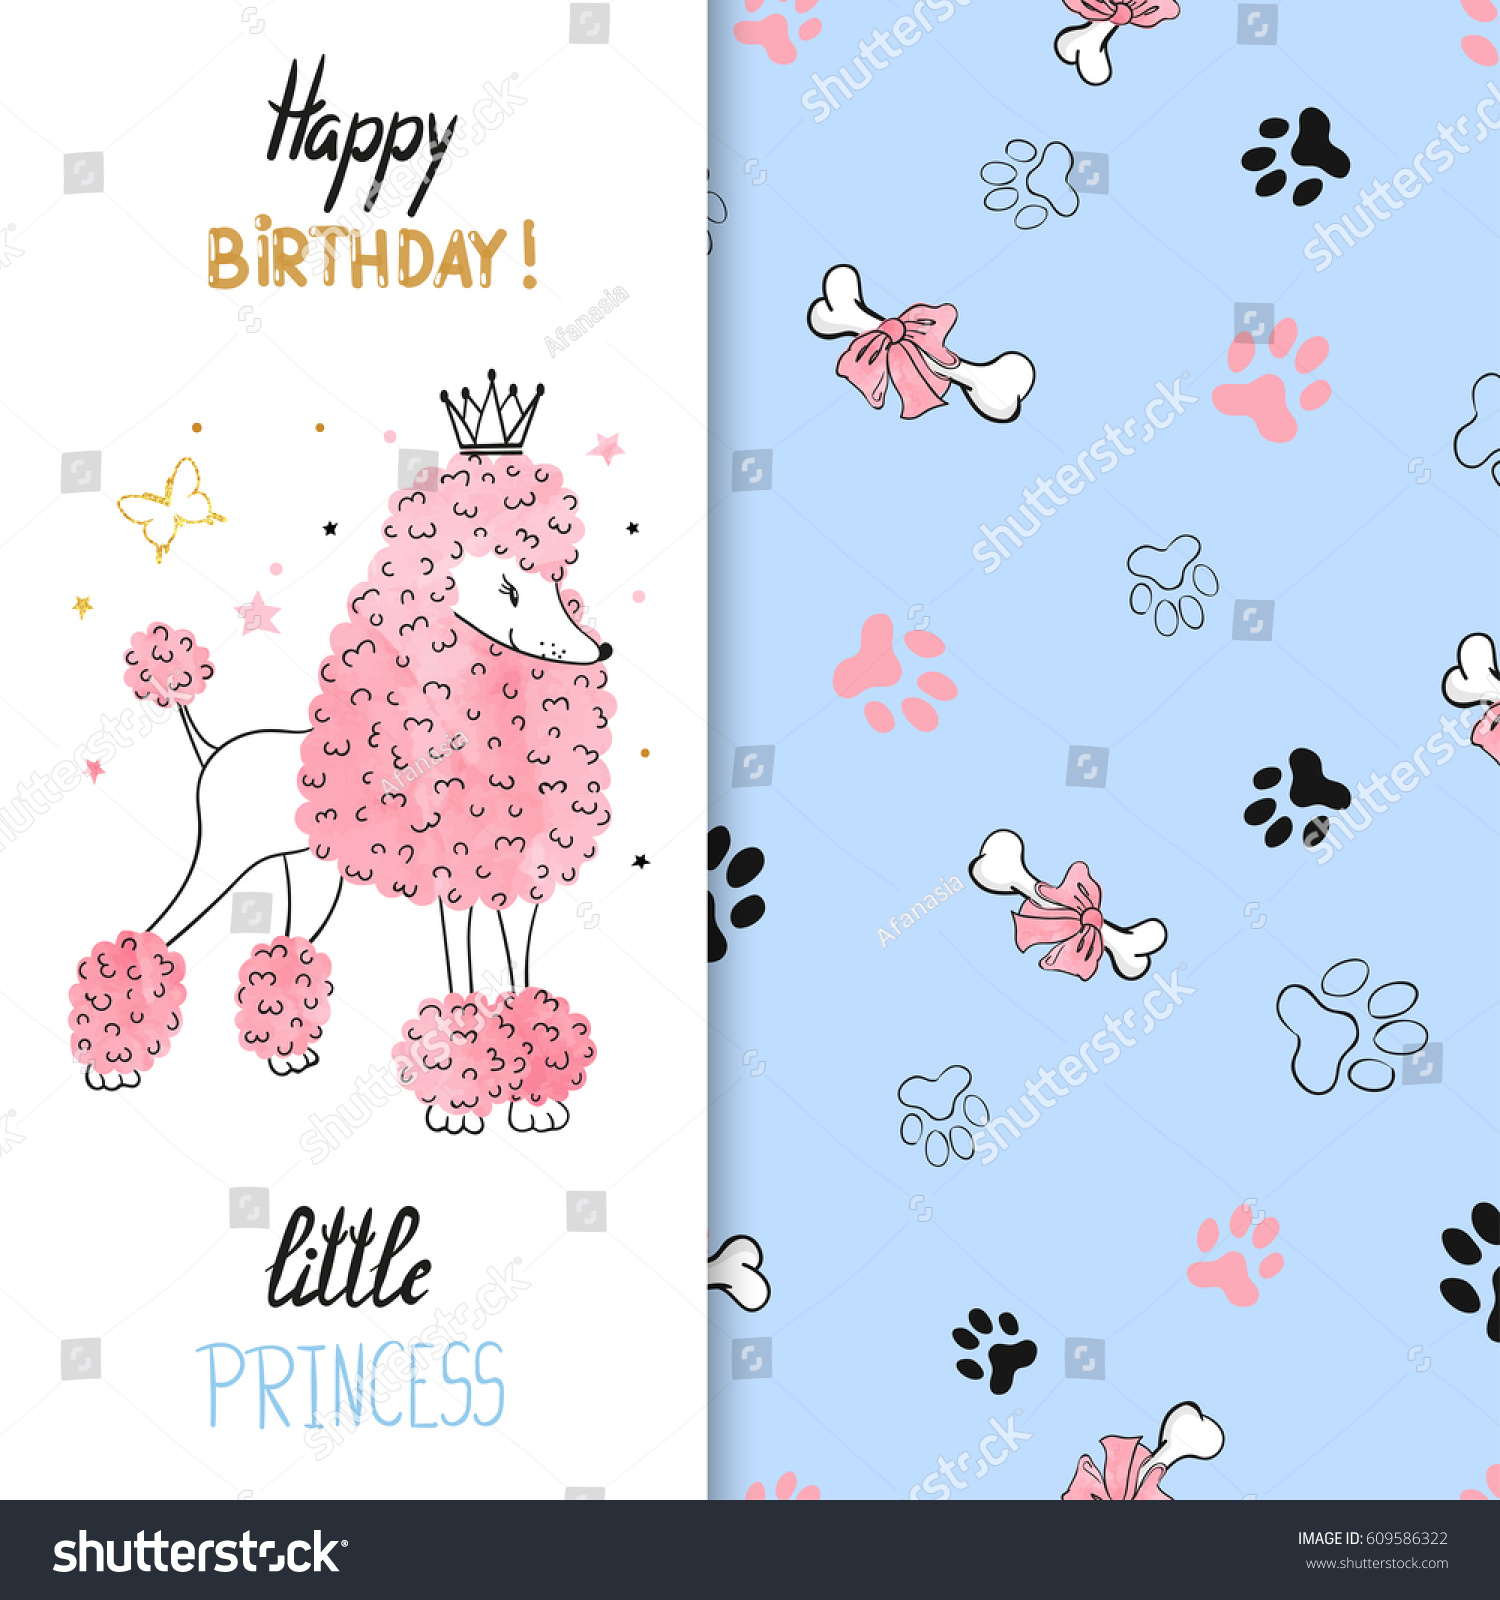 Watercolor birthday greeting card design little stock vector watercolor birthday greeting card design for little girl vector illustration of cute little princess poodle kristyandbryce Images